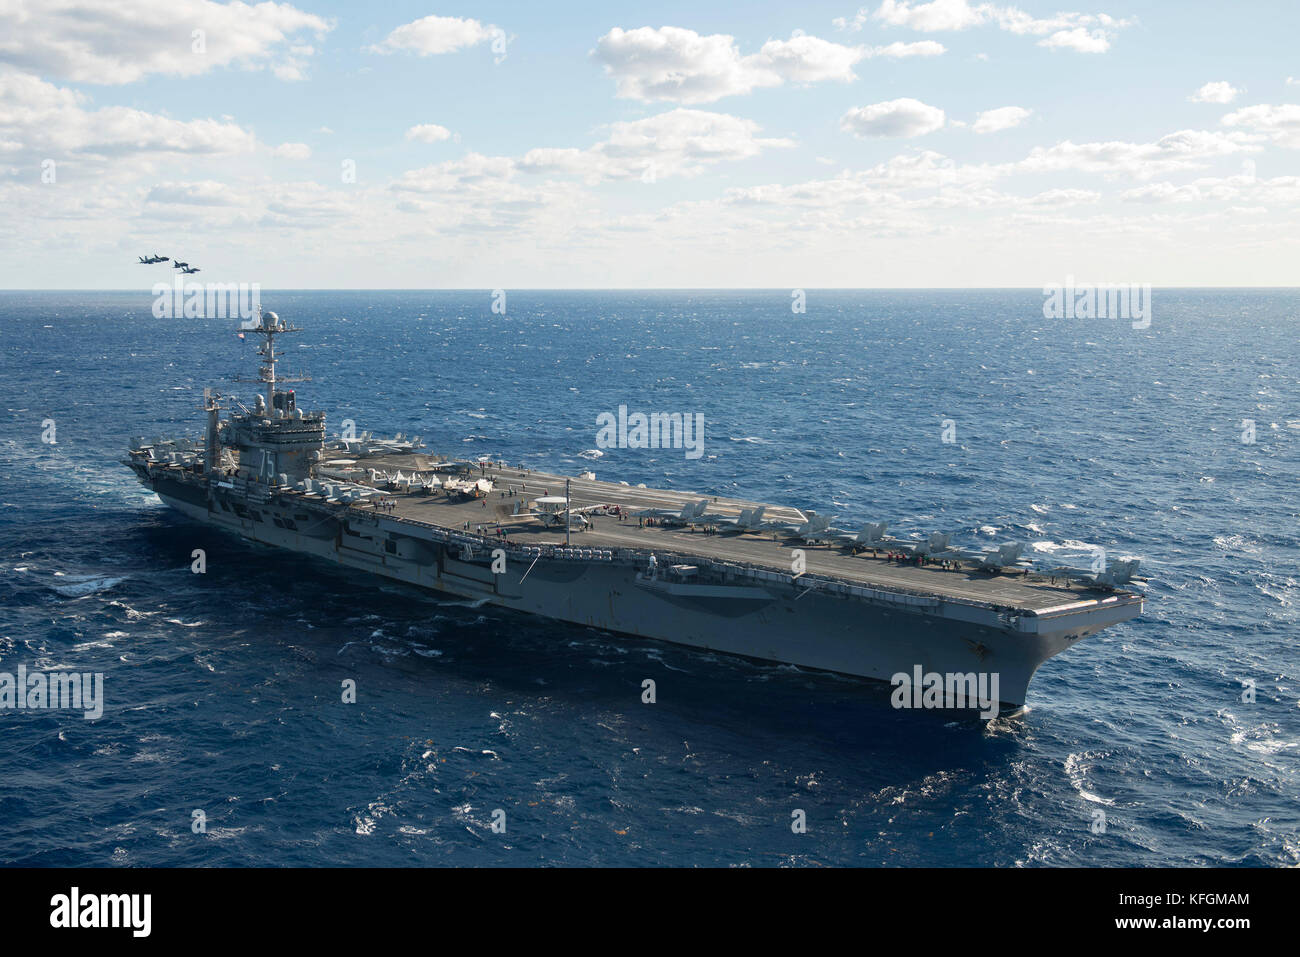 Aircraft Carrier - Stock Image